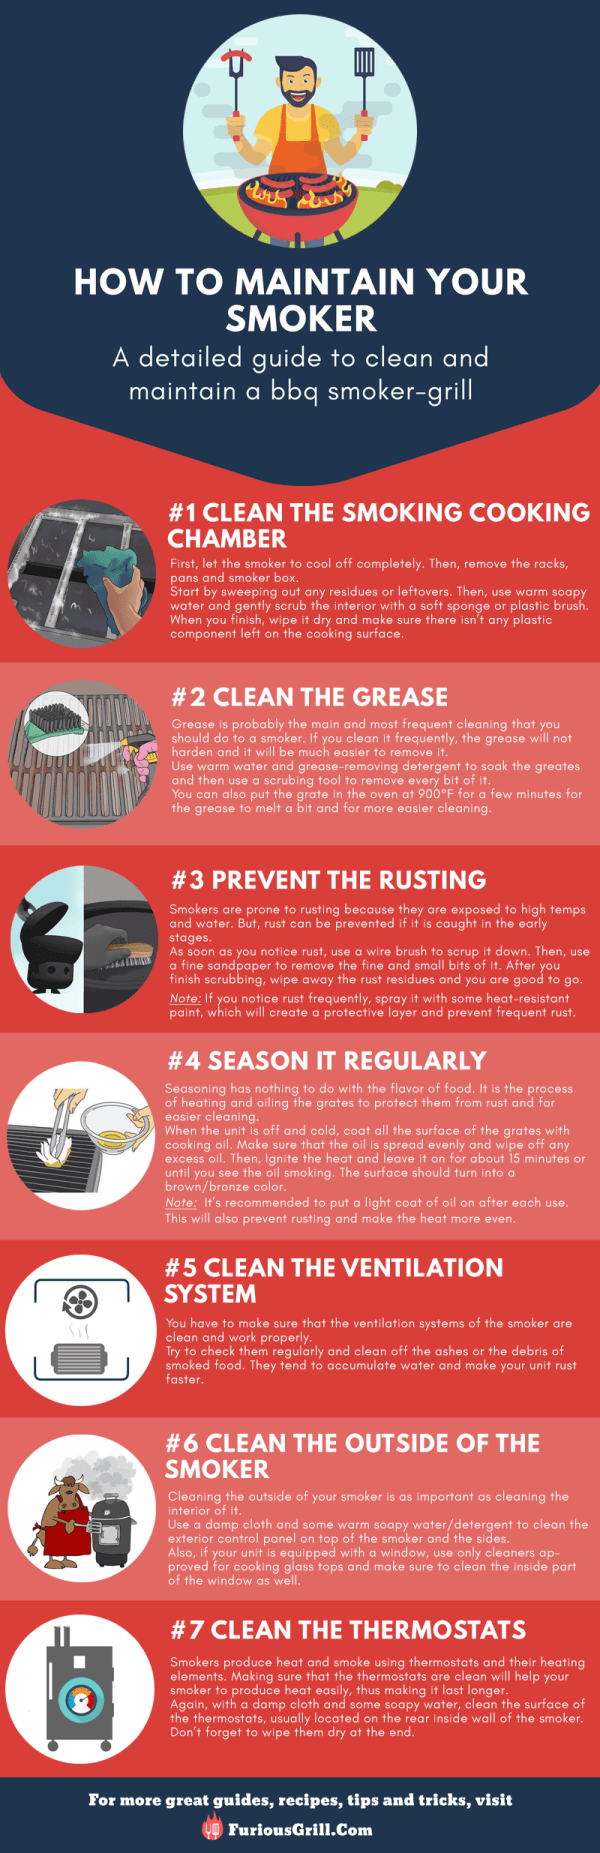 How-to-Maintain-Your-Smoker-infographic-galleryr